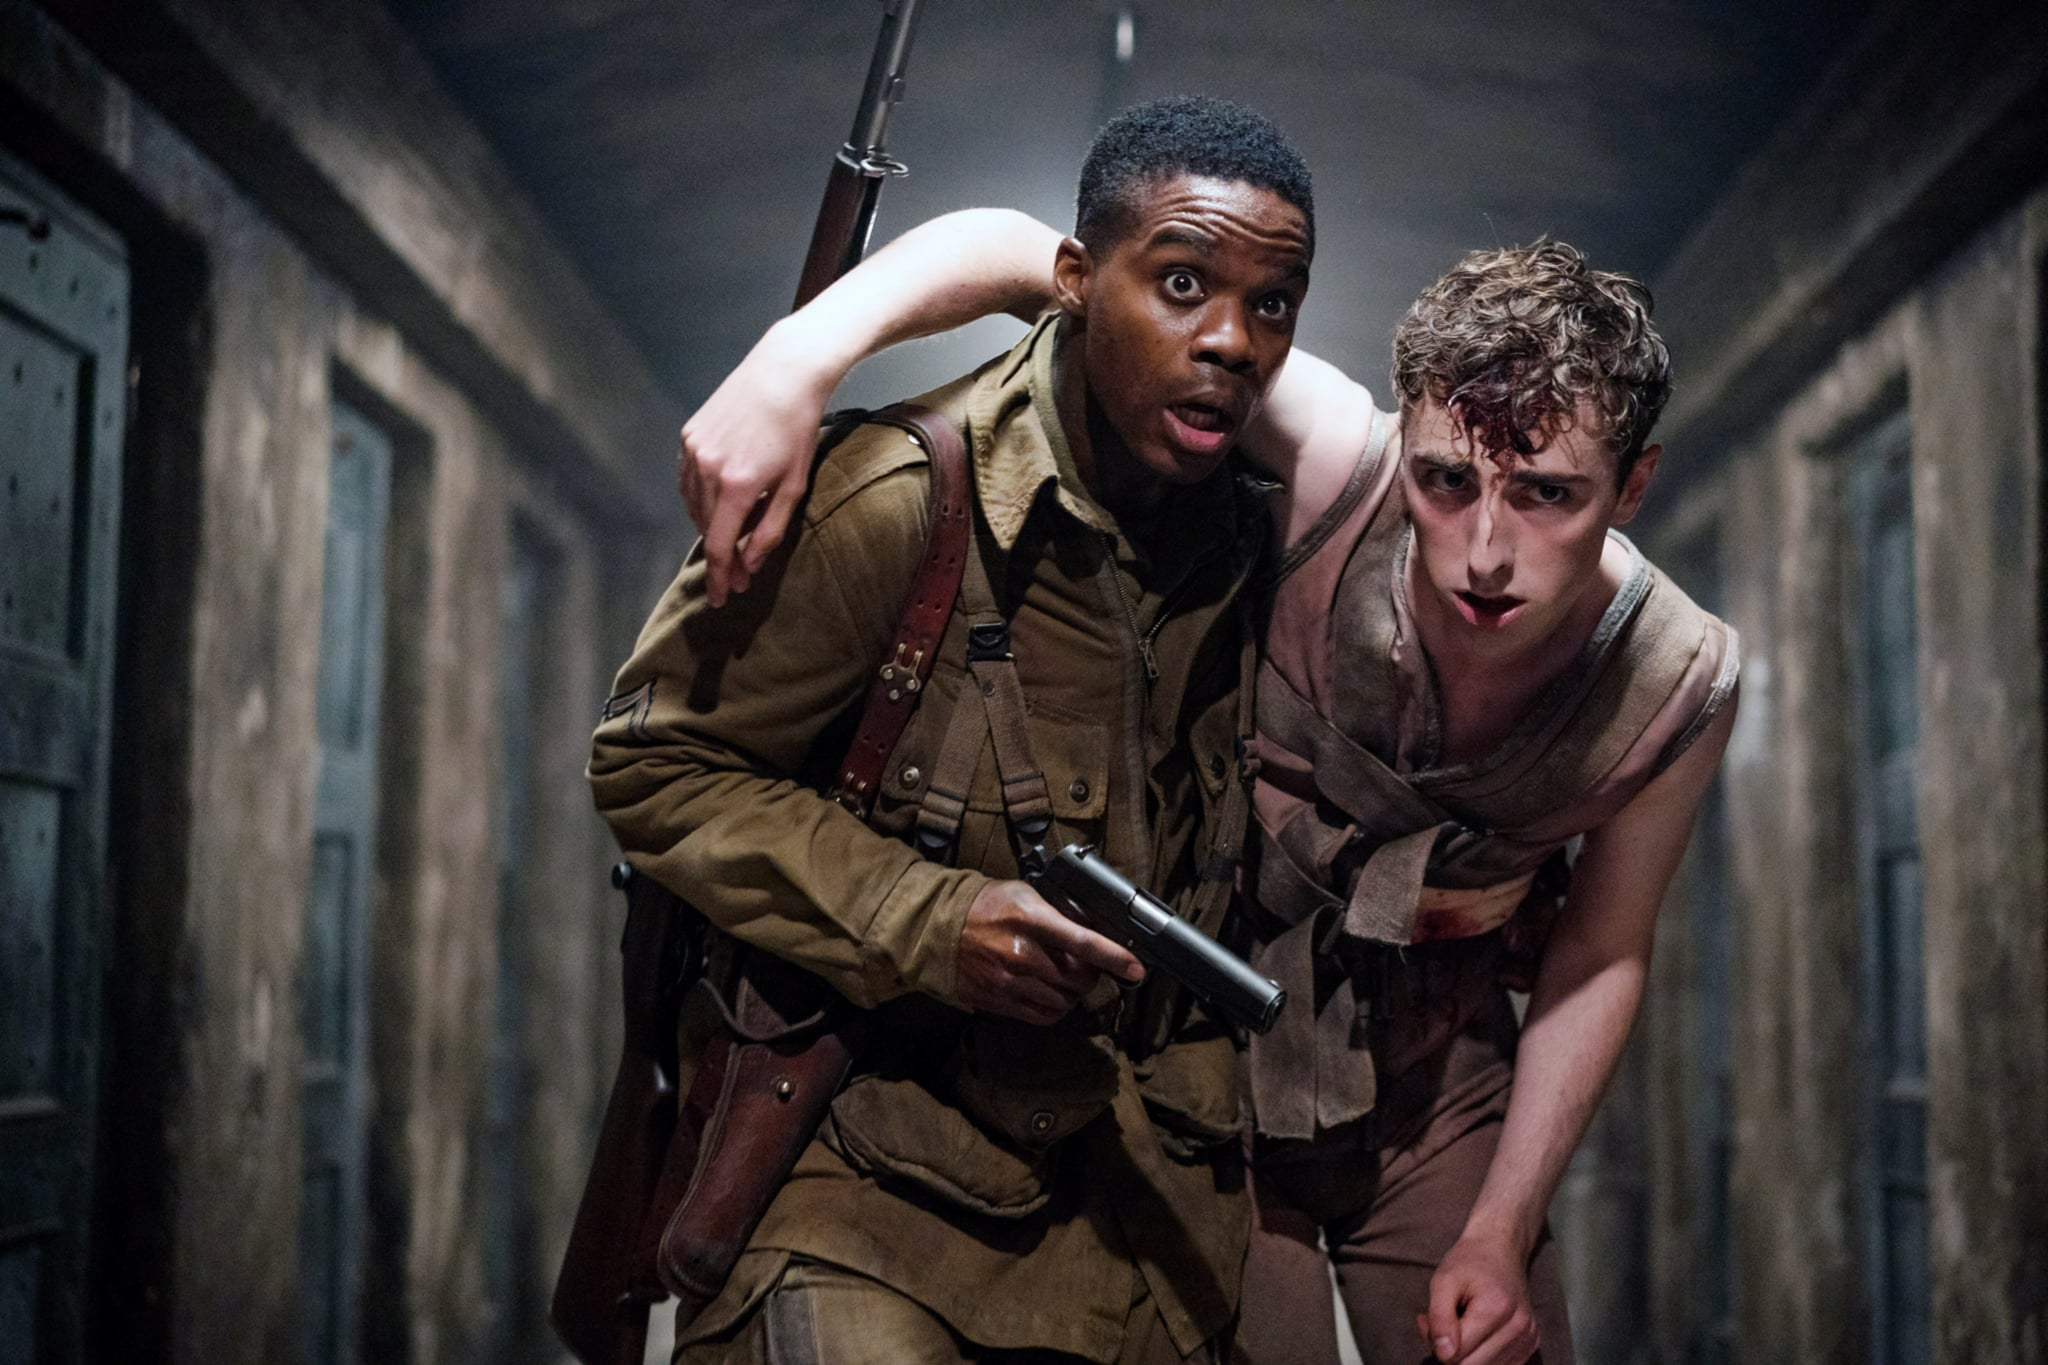 OVERLORD, from left: Jovan Adepo, Dominic Applewhite, 2018. ph: Peter Mountain / Paramount Pictures /Courtesy Everett Collection